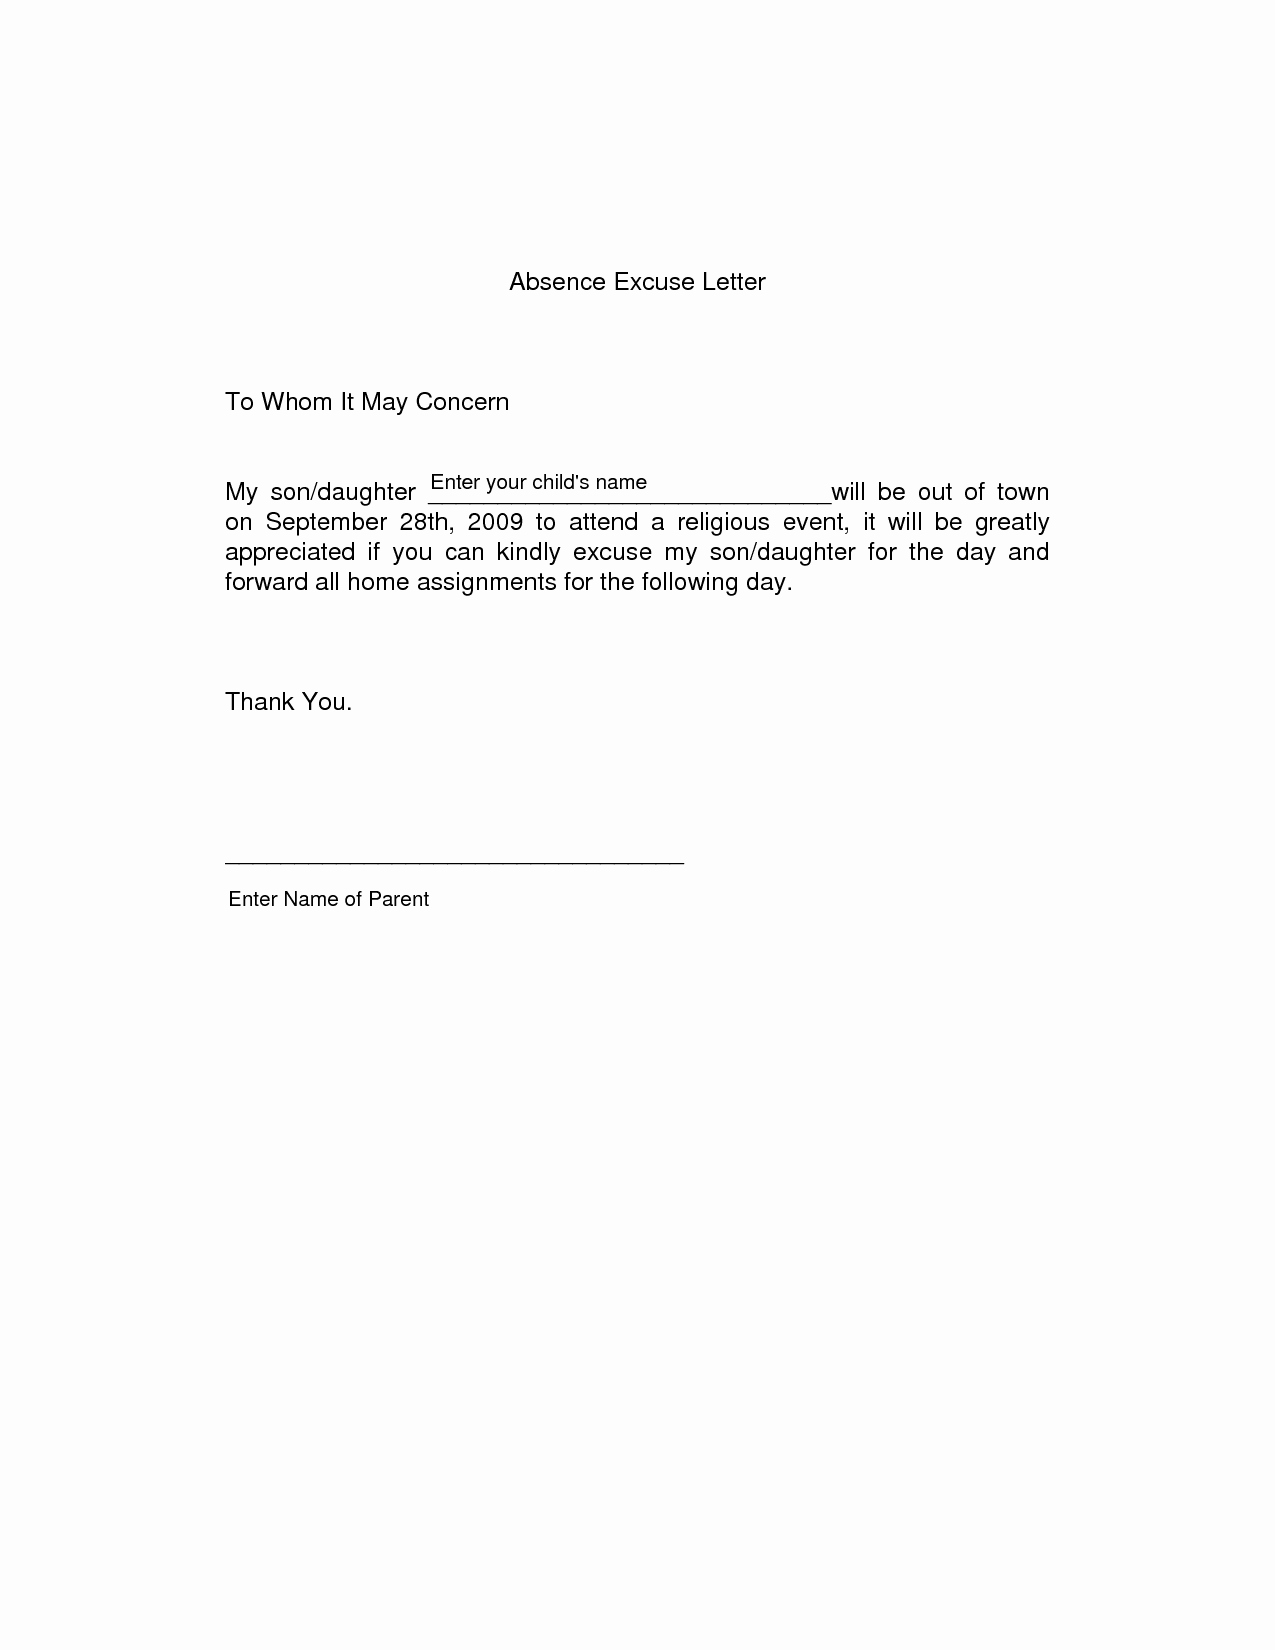 School Leave Of Absence Letter Unique Leave Absence for University Homelightingcowarning